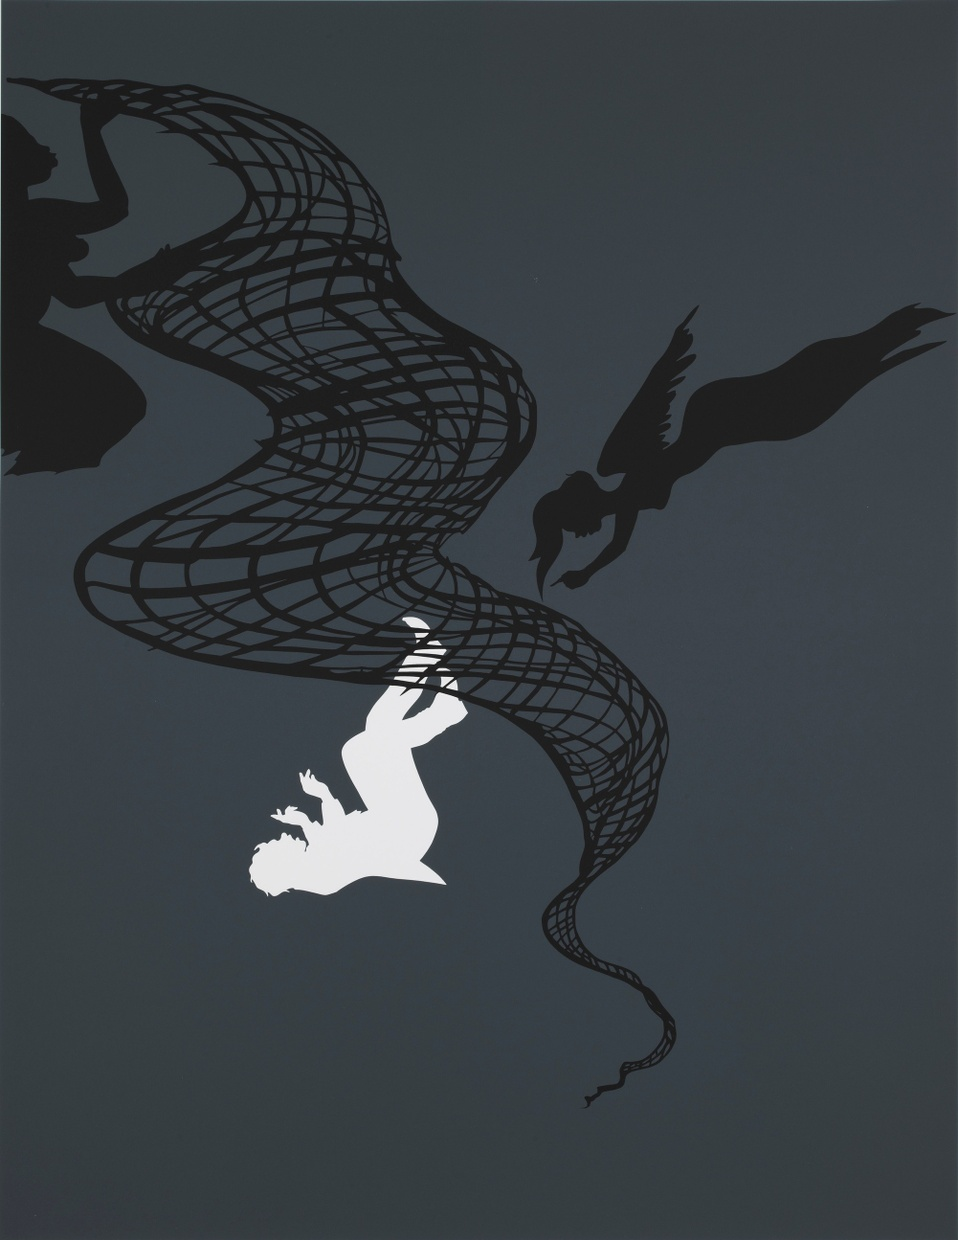 A white silhouette of a boy falling from a black net being shaken out by the black silhouette of a woman. A black silhouette of an angel woman floats to the side of the net.